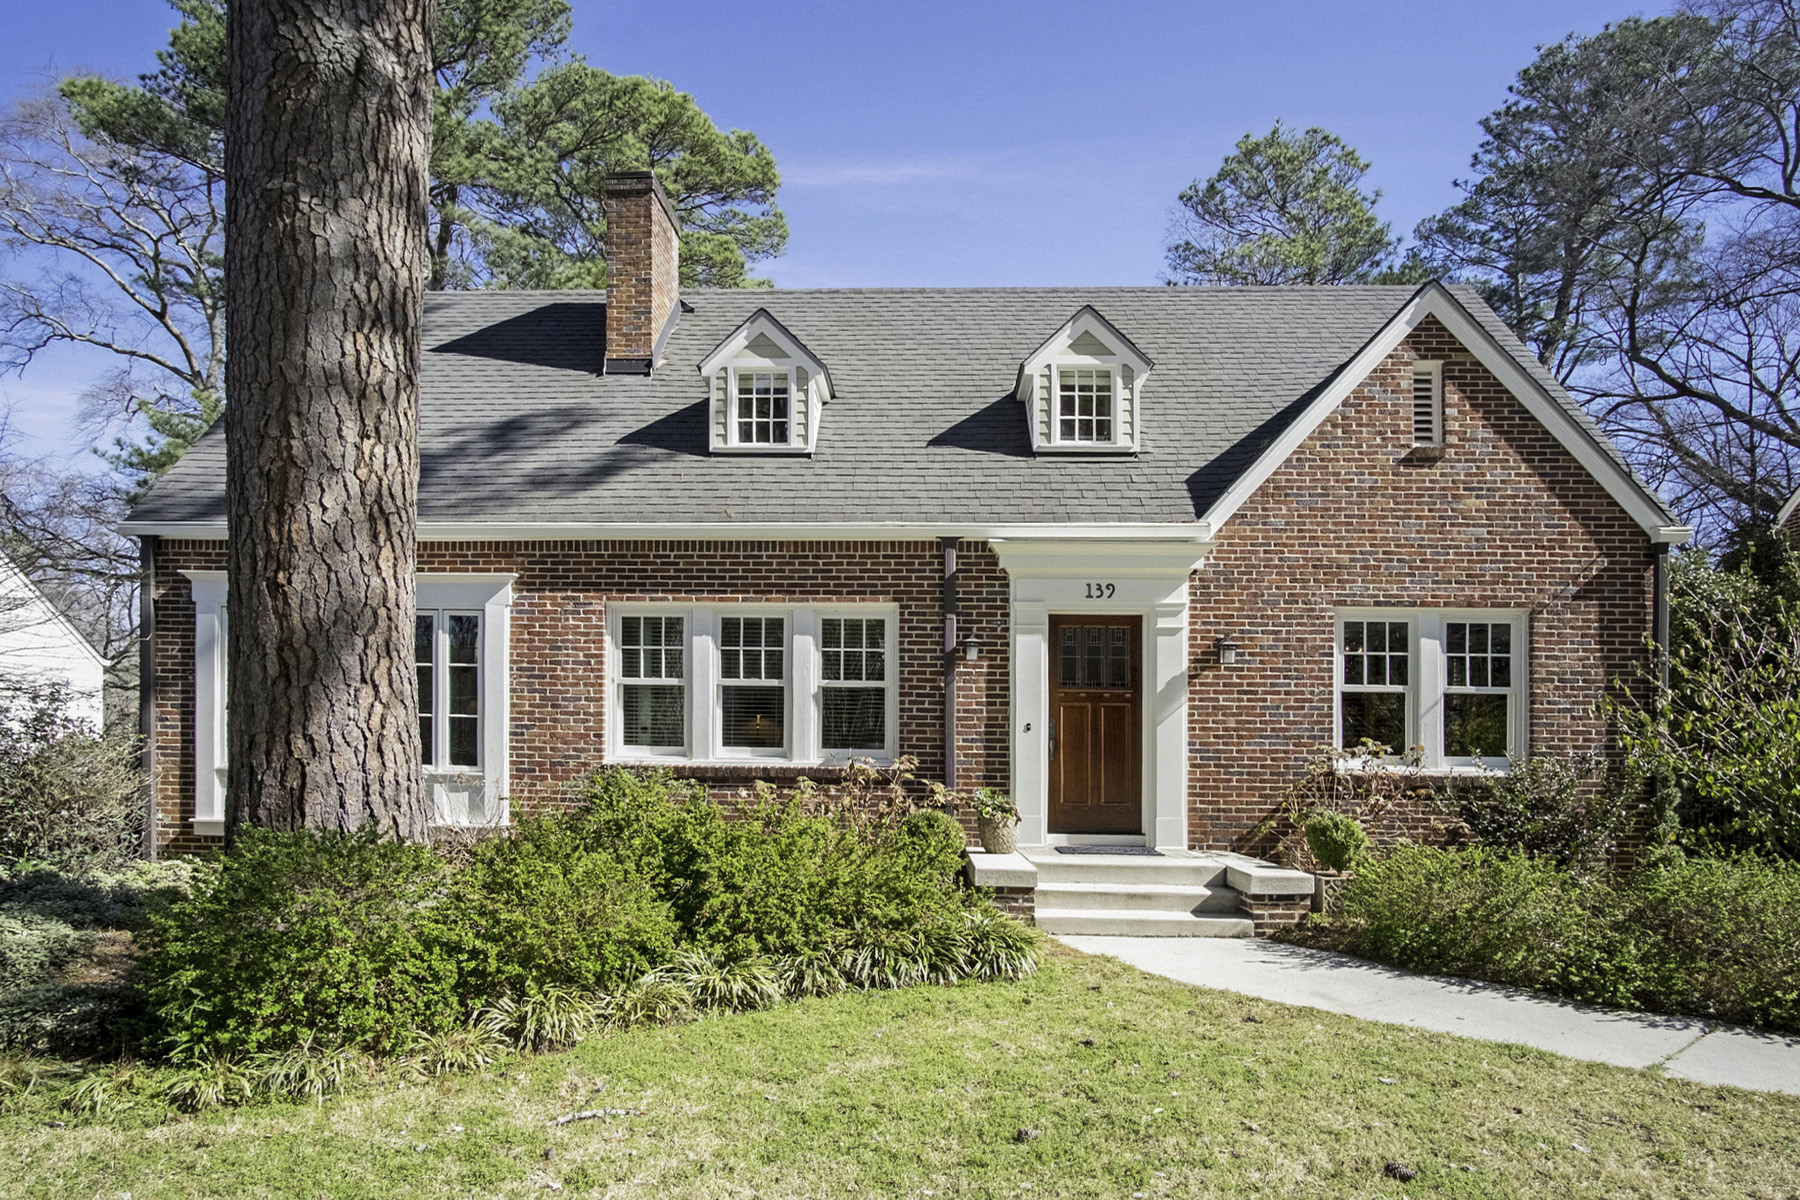 Single Family Homes for Active at Exceptional Renovation Of This 30's Era Elegant Brick Jewel 139 Coventry Road Decatur, Georgia 30030 United States